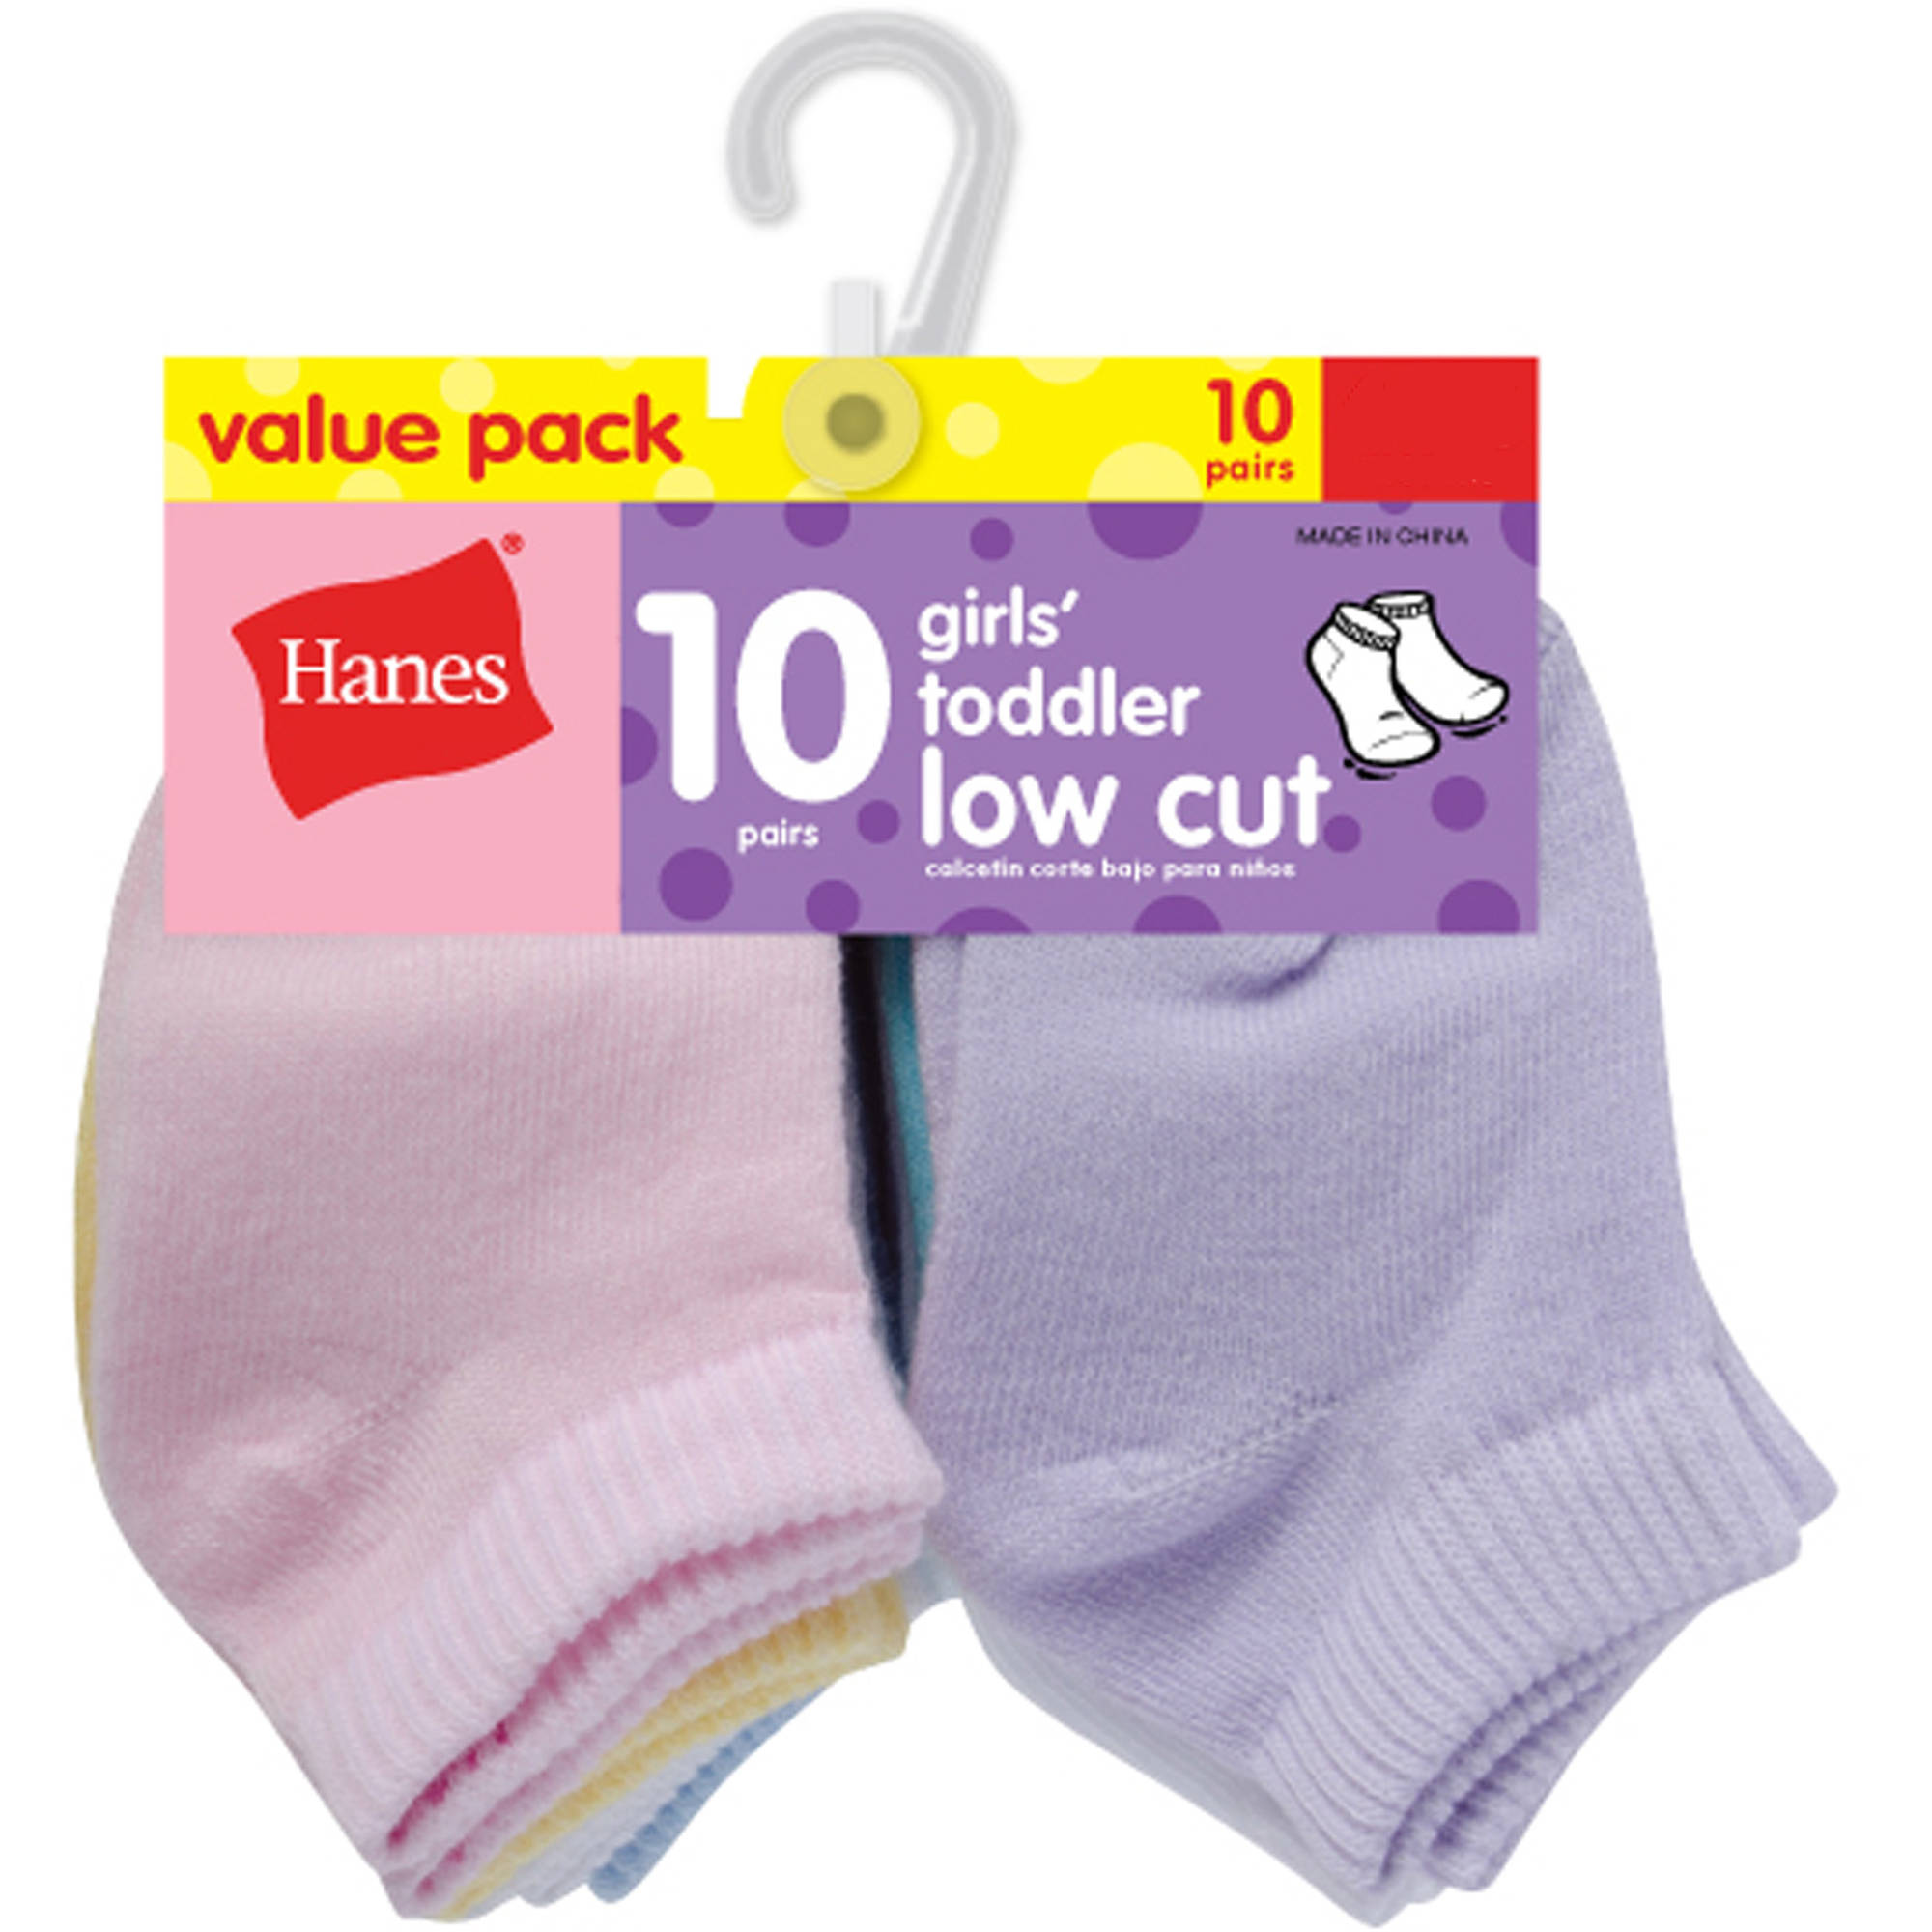 Hanes Newborn Baby Girl Low Cut Socks - 10 Pack